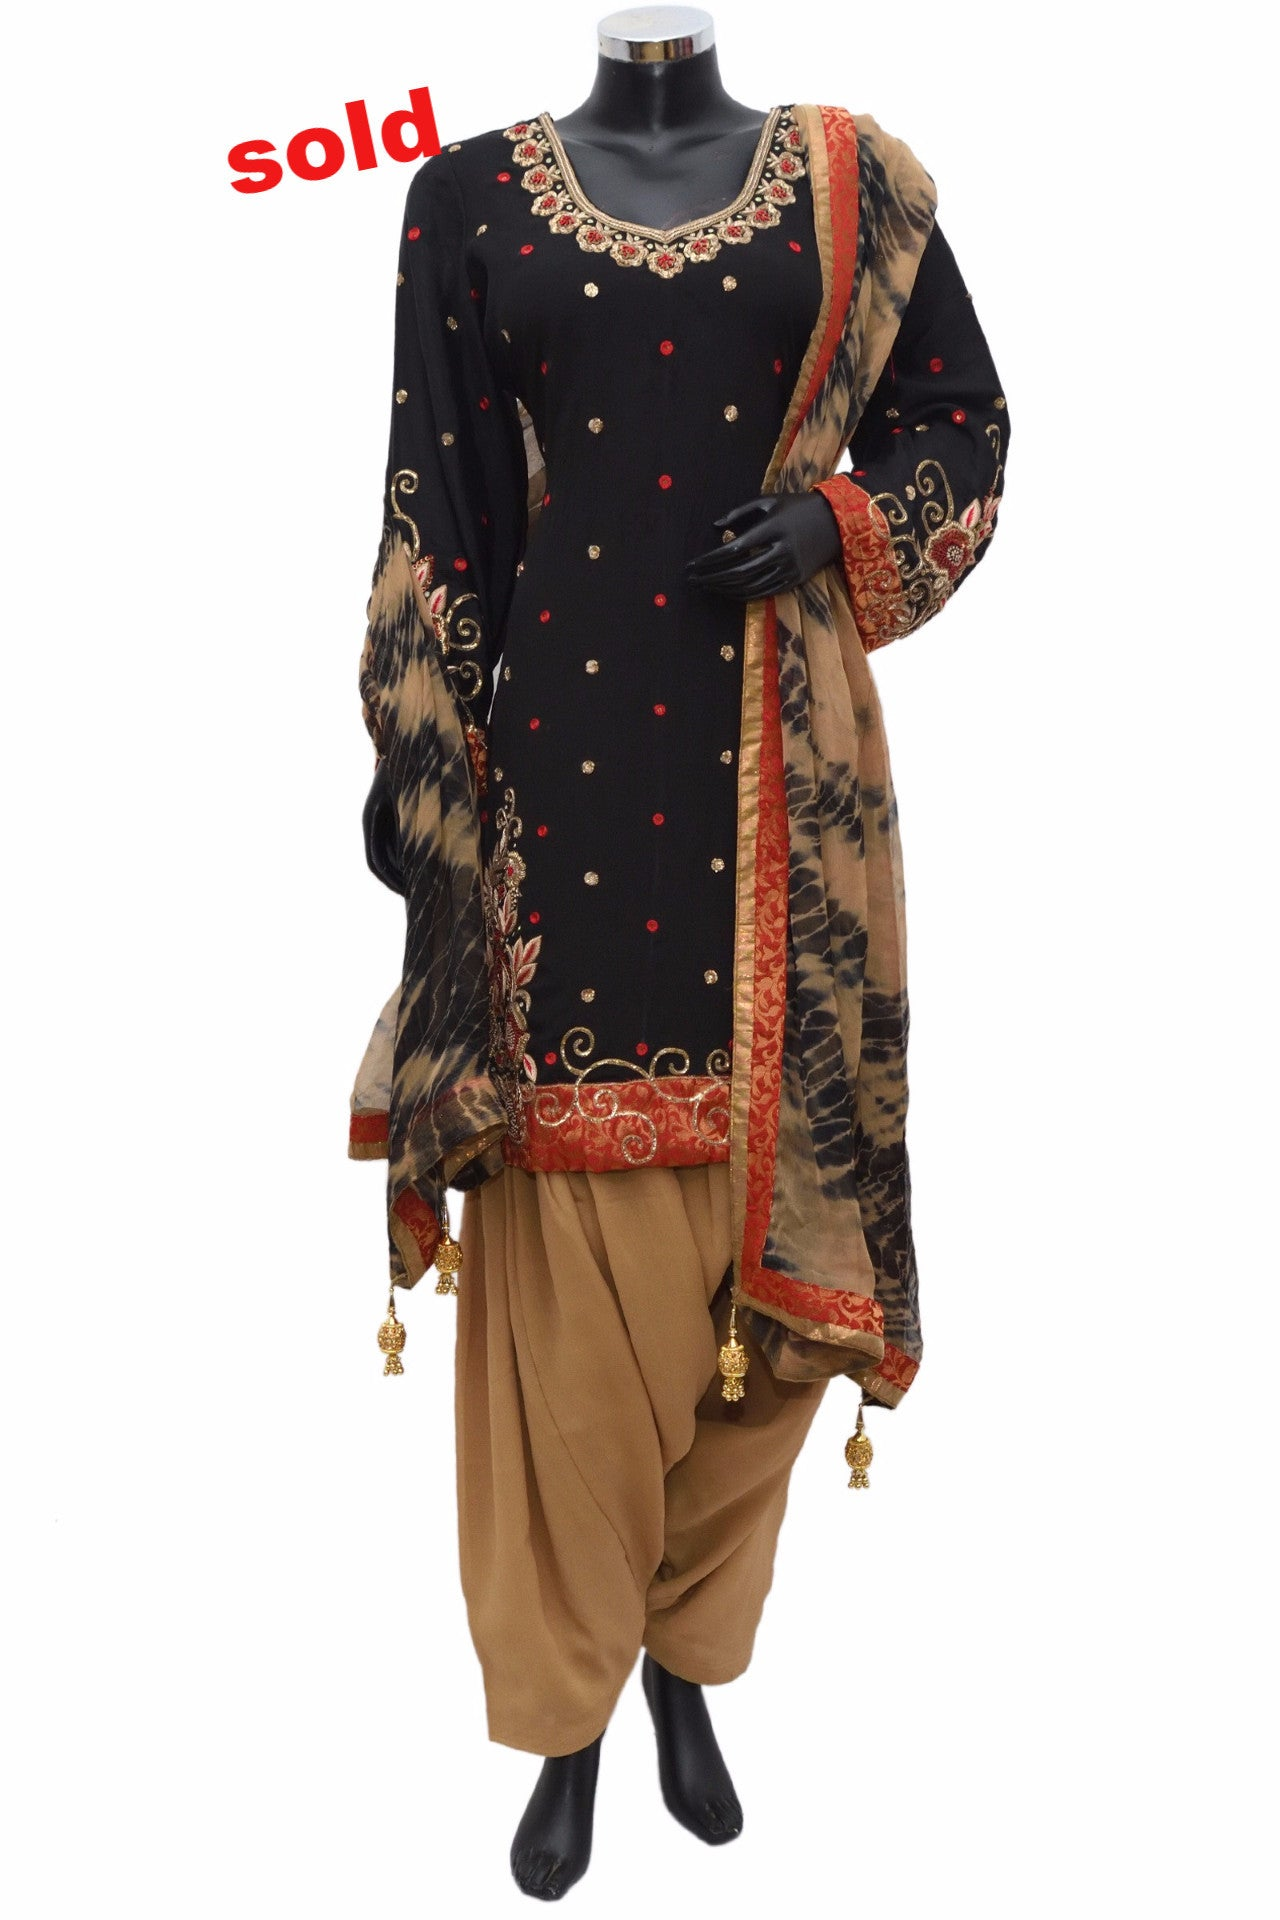 Gold and black combination patiala suit #fdn0461